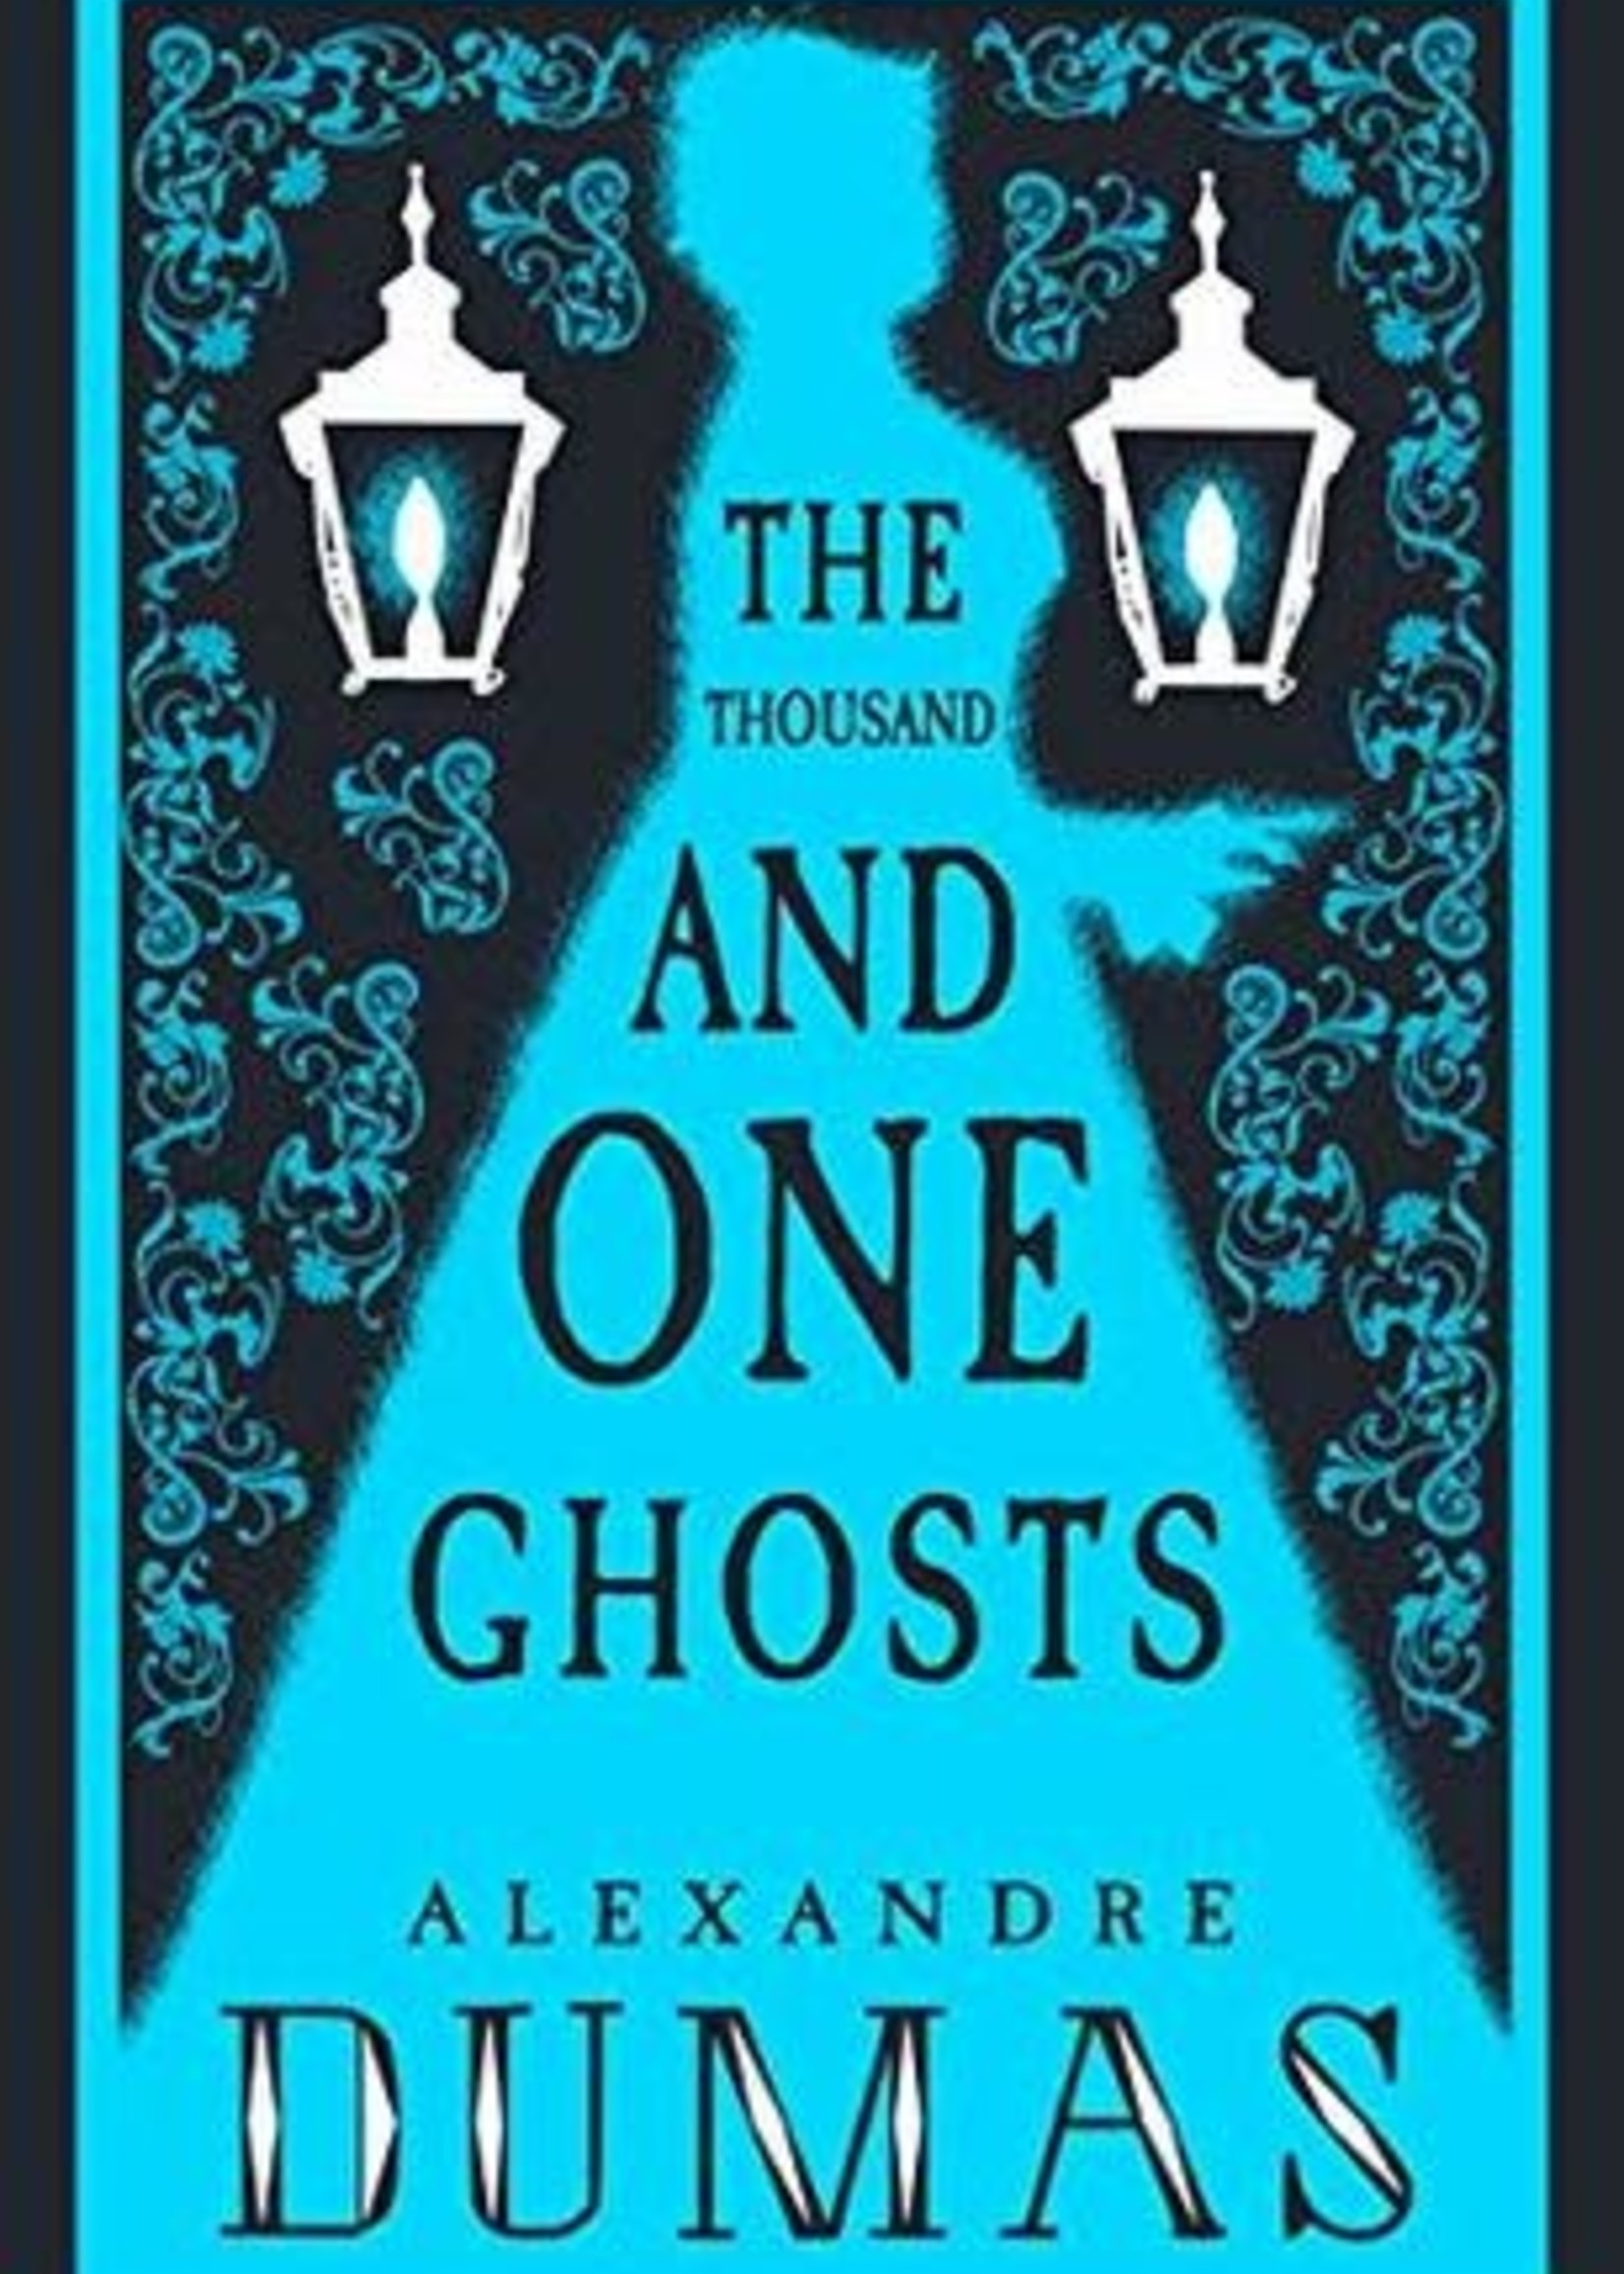 The Thousand and One Ghosts by Alexandre Dumas